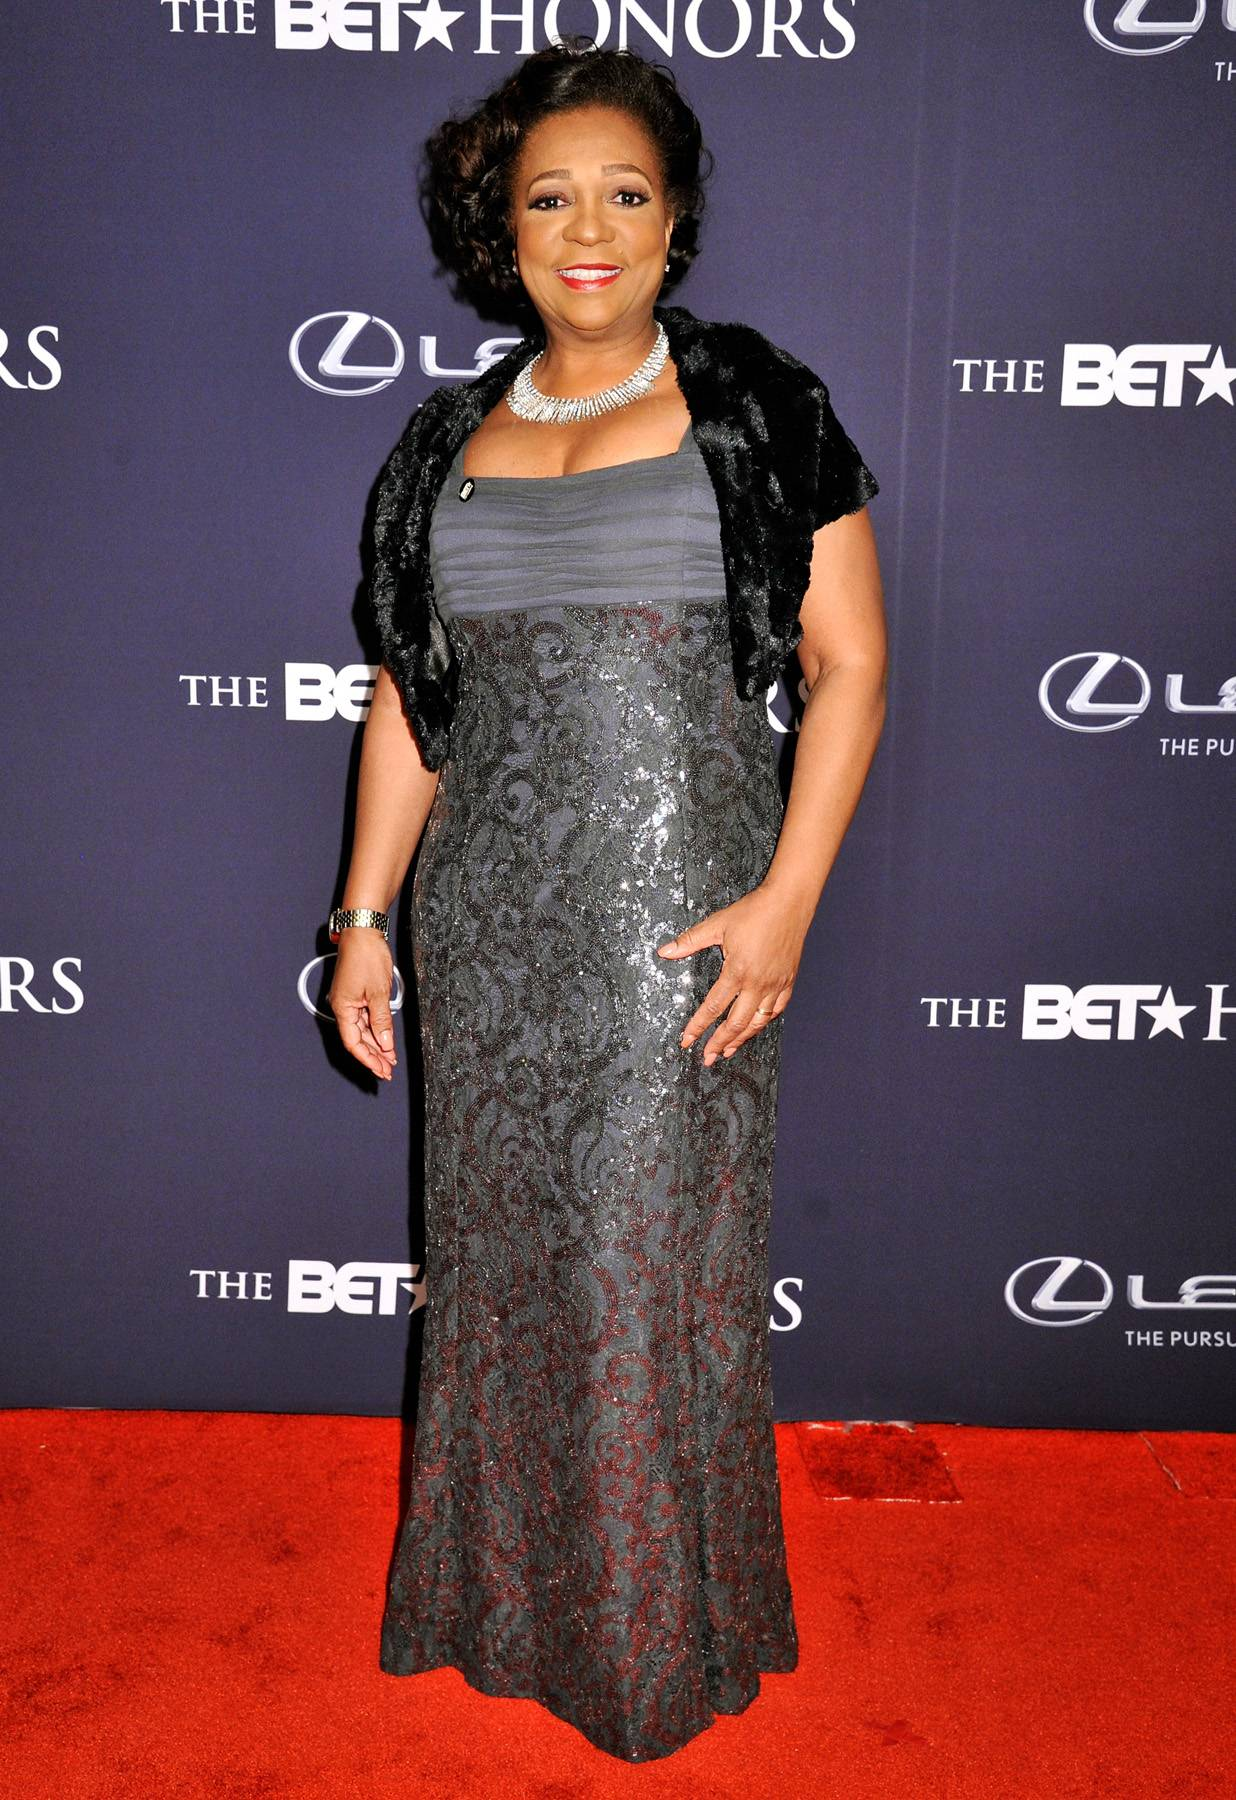 Classy and Sassy  - BET's Vice President of SpecialsLynne Harris Taylor is styled in a classy floor-length gown. (Photo: Kris Connor/BET/Getty Images for BET)